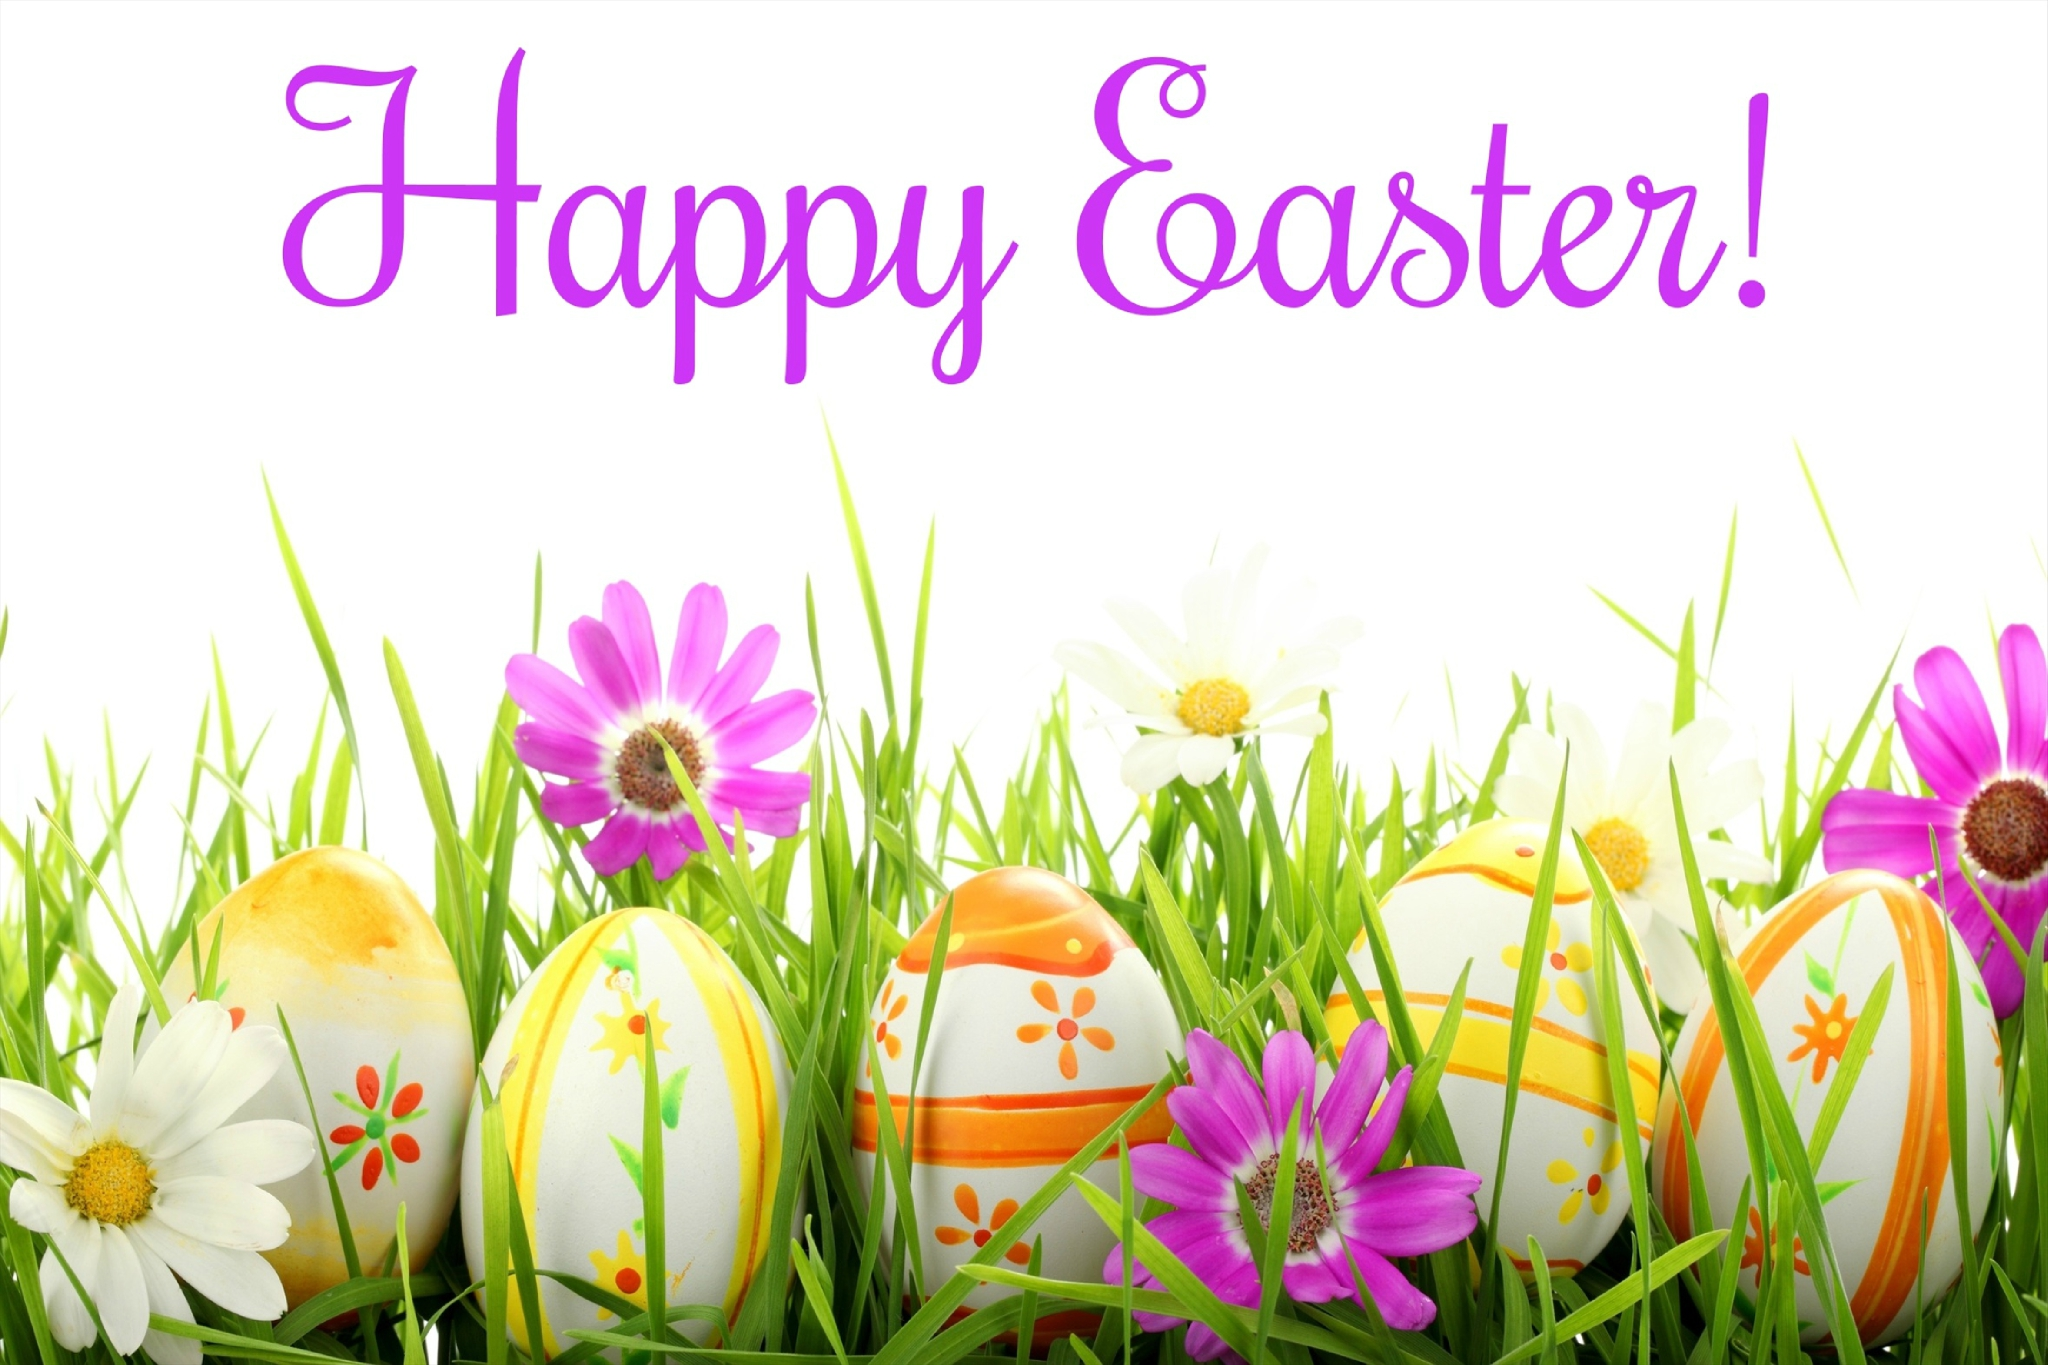 Happy Easter 2019 Images Pictures Quotes Wishes Messages 2048x1365